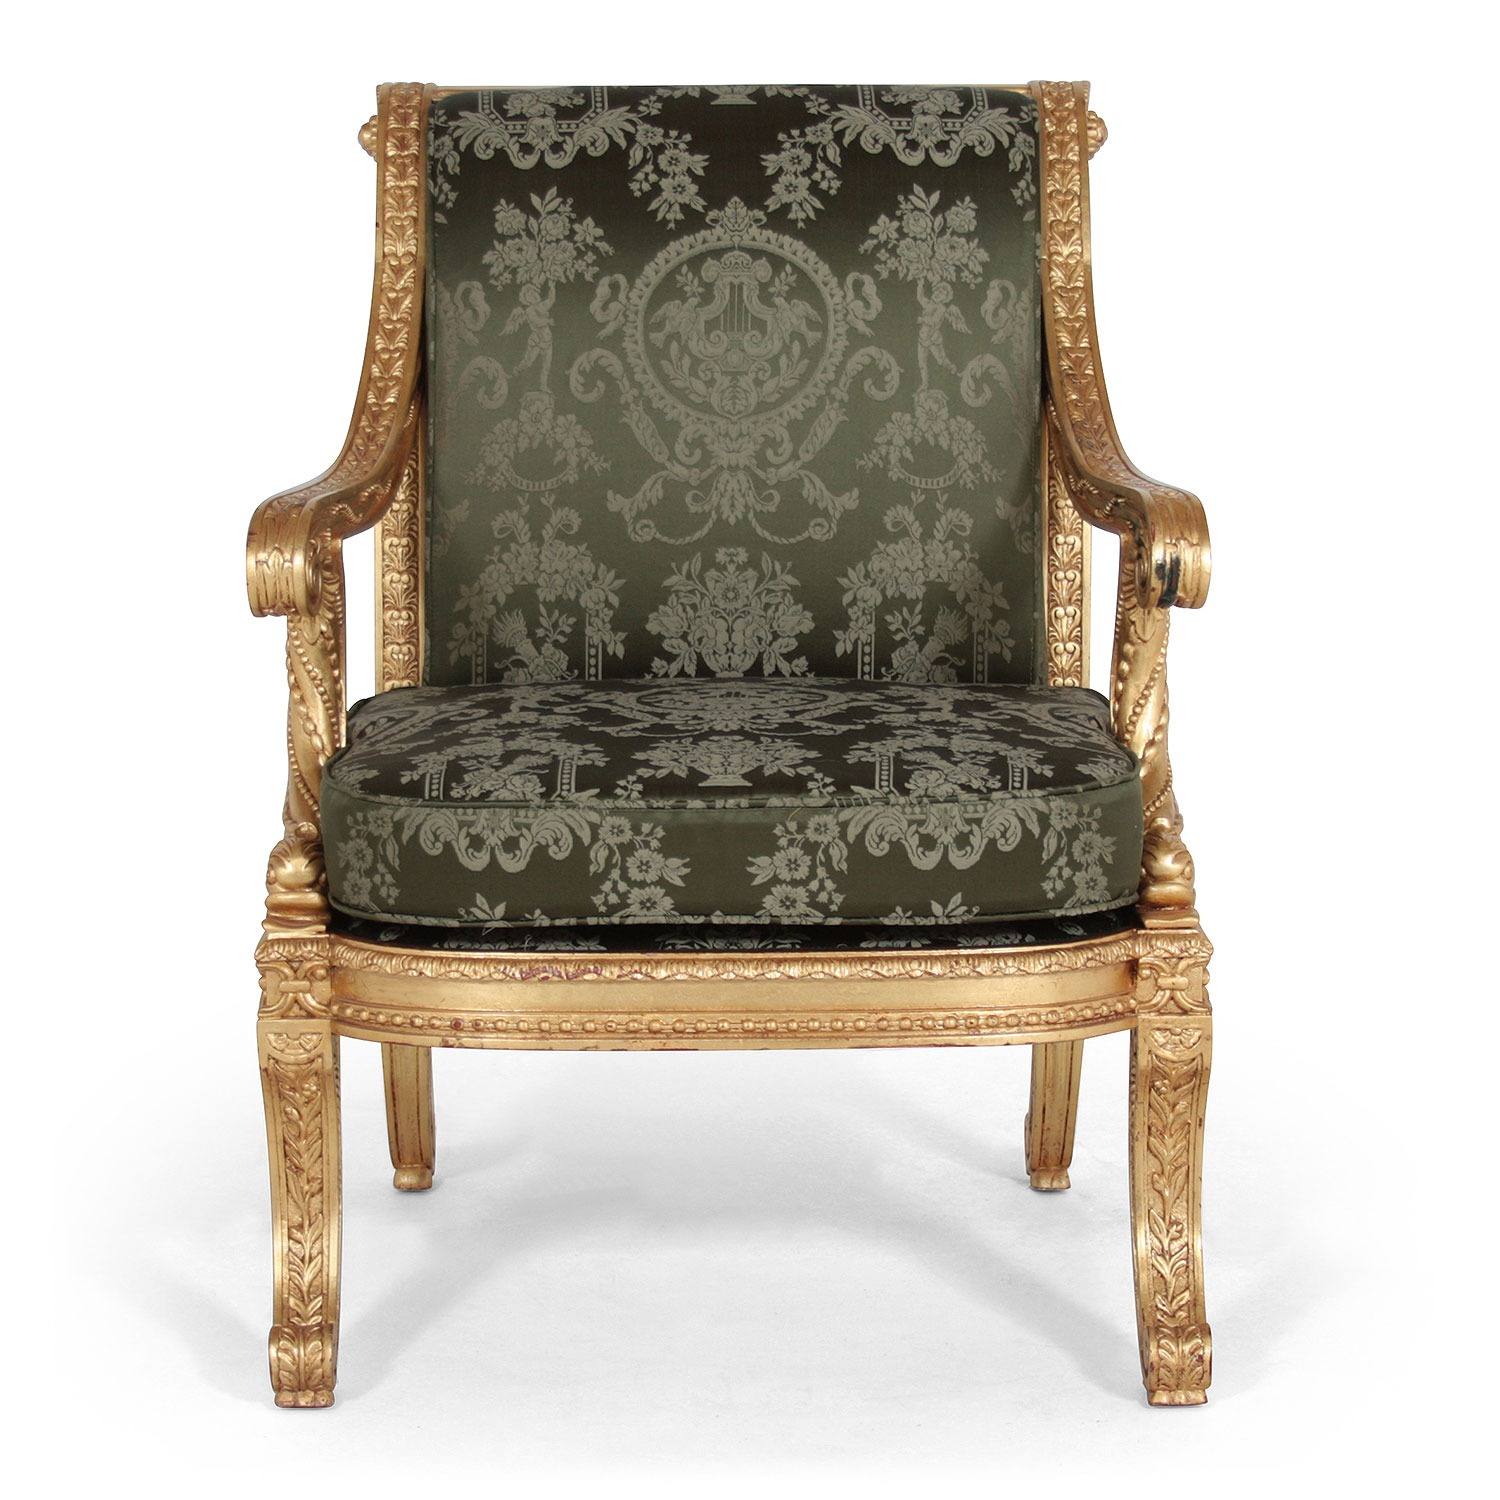 Louis French 18th Century style Formal Chair